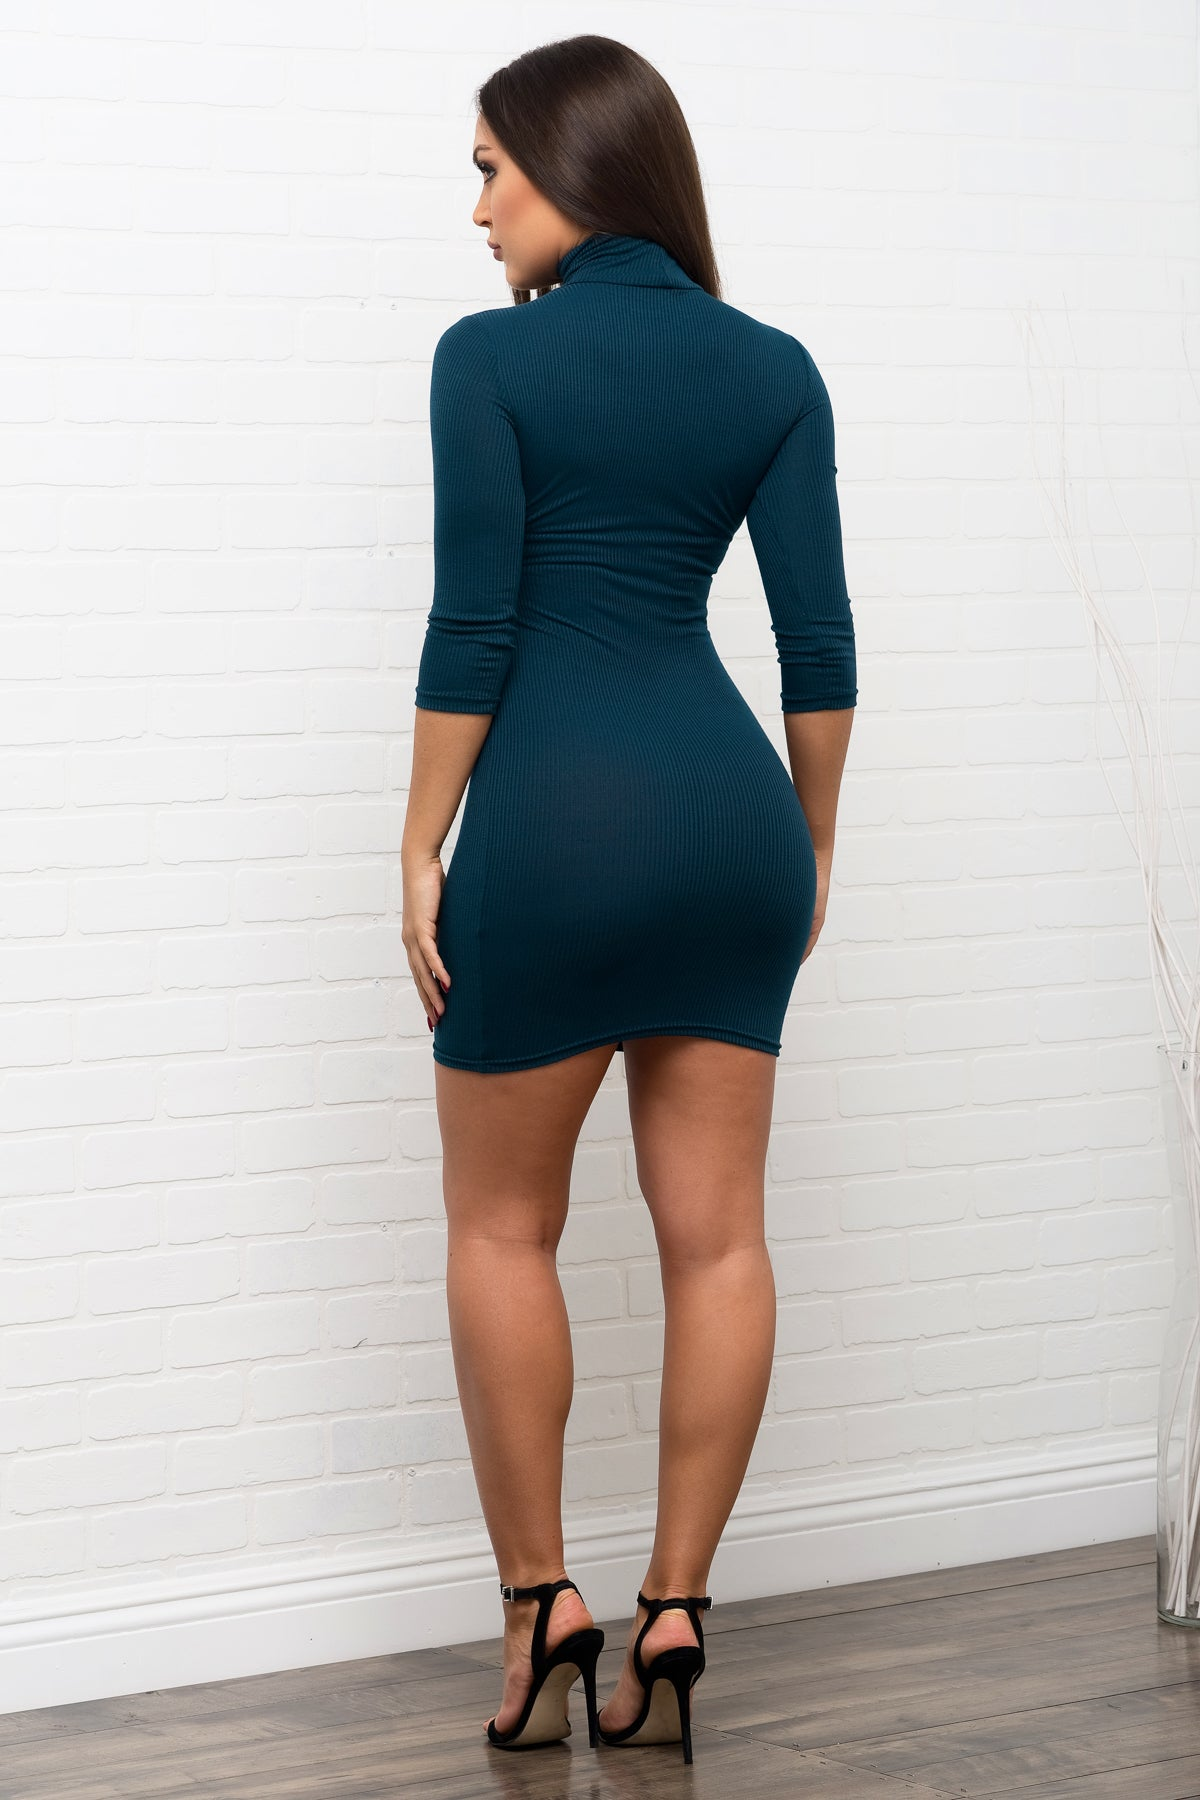 Whitney Dress - Teal